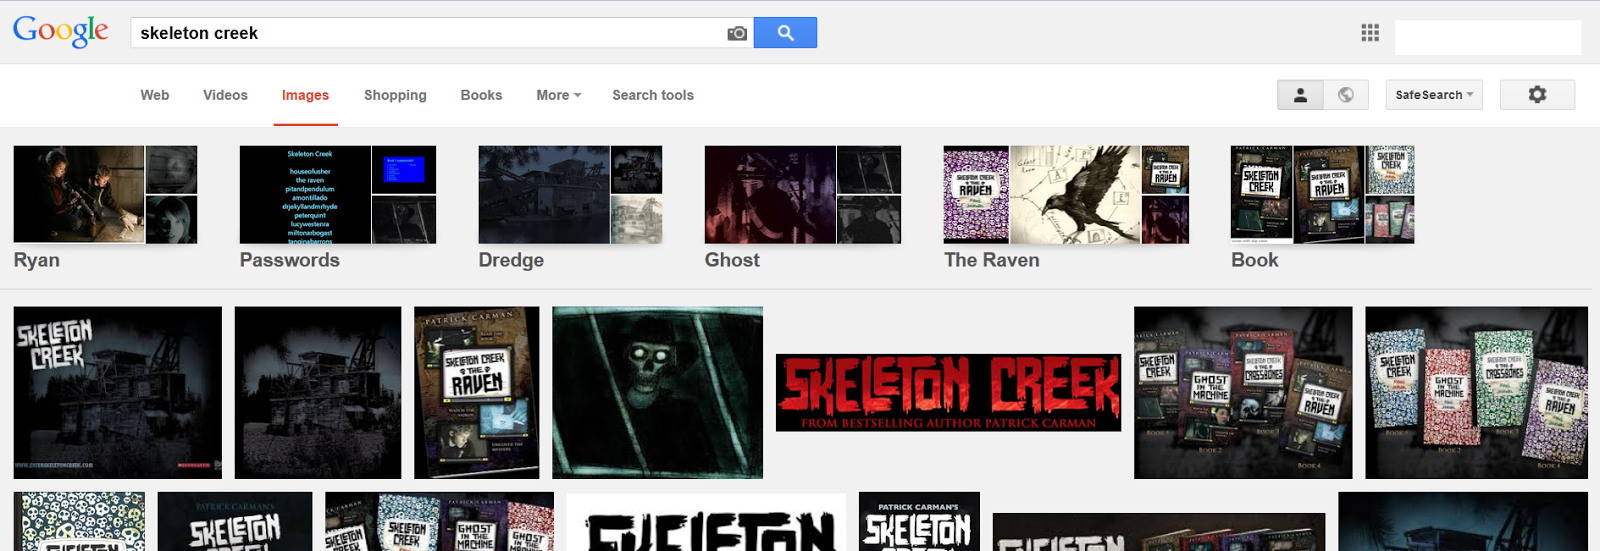 Google Images for Skeleton Creek to be chosen for book review trailer